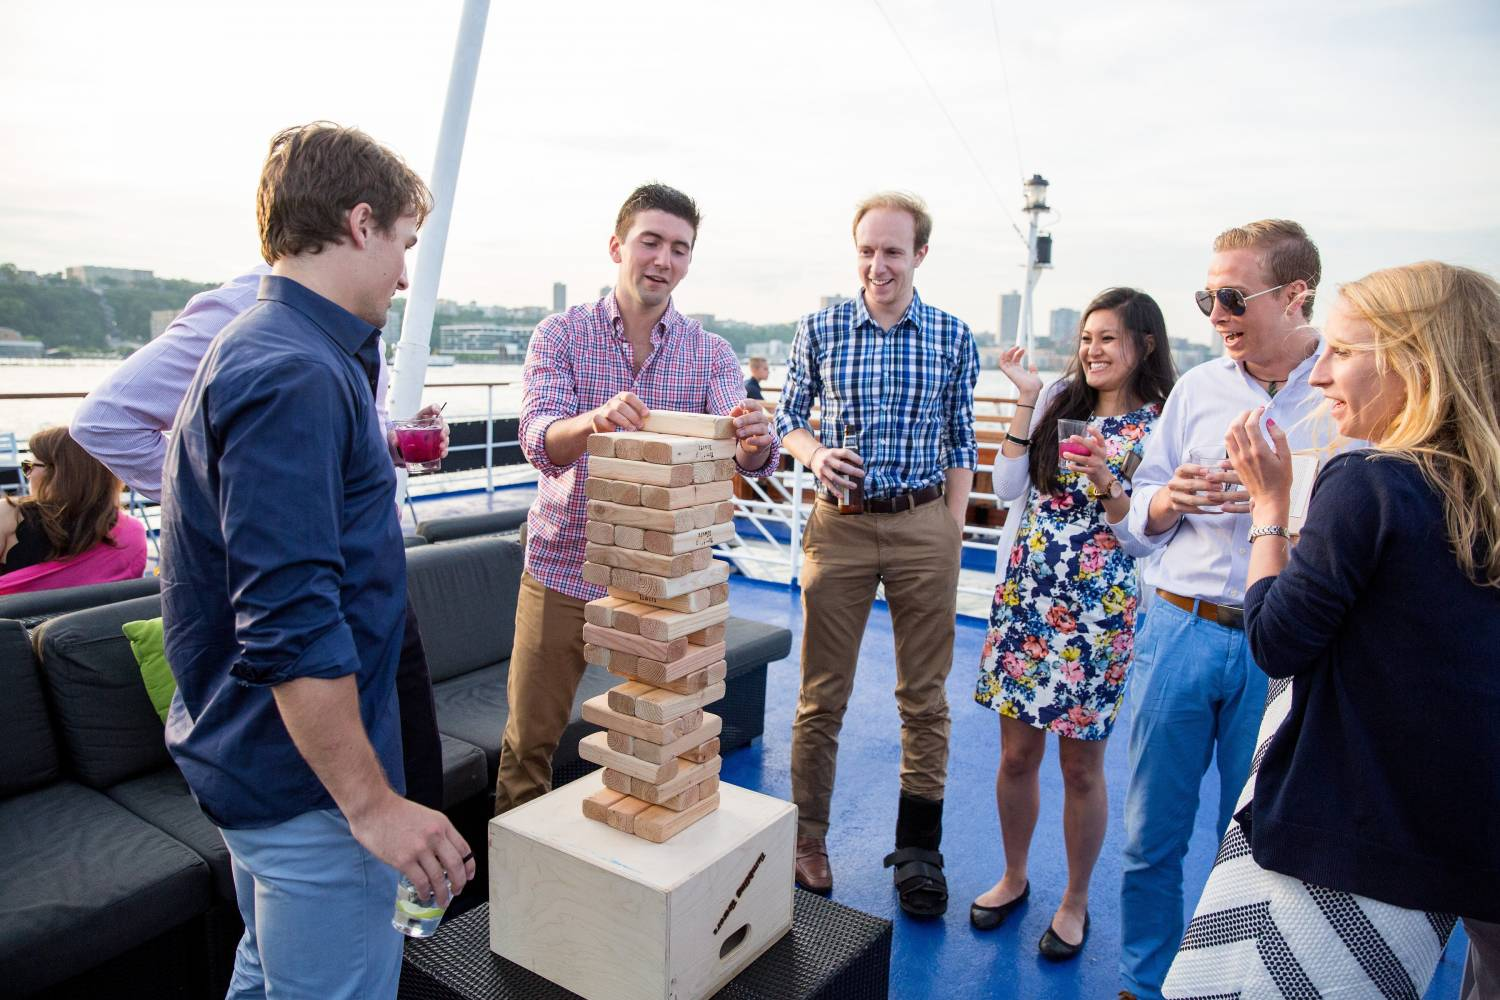 Adults somehow managing to play jenga on a boat